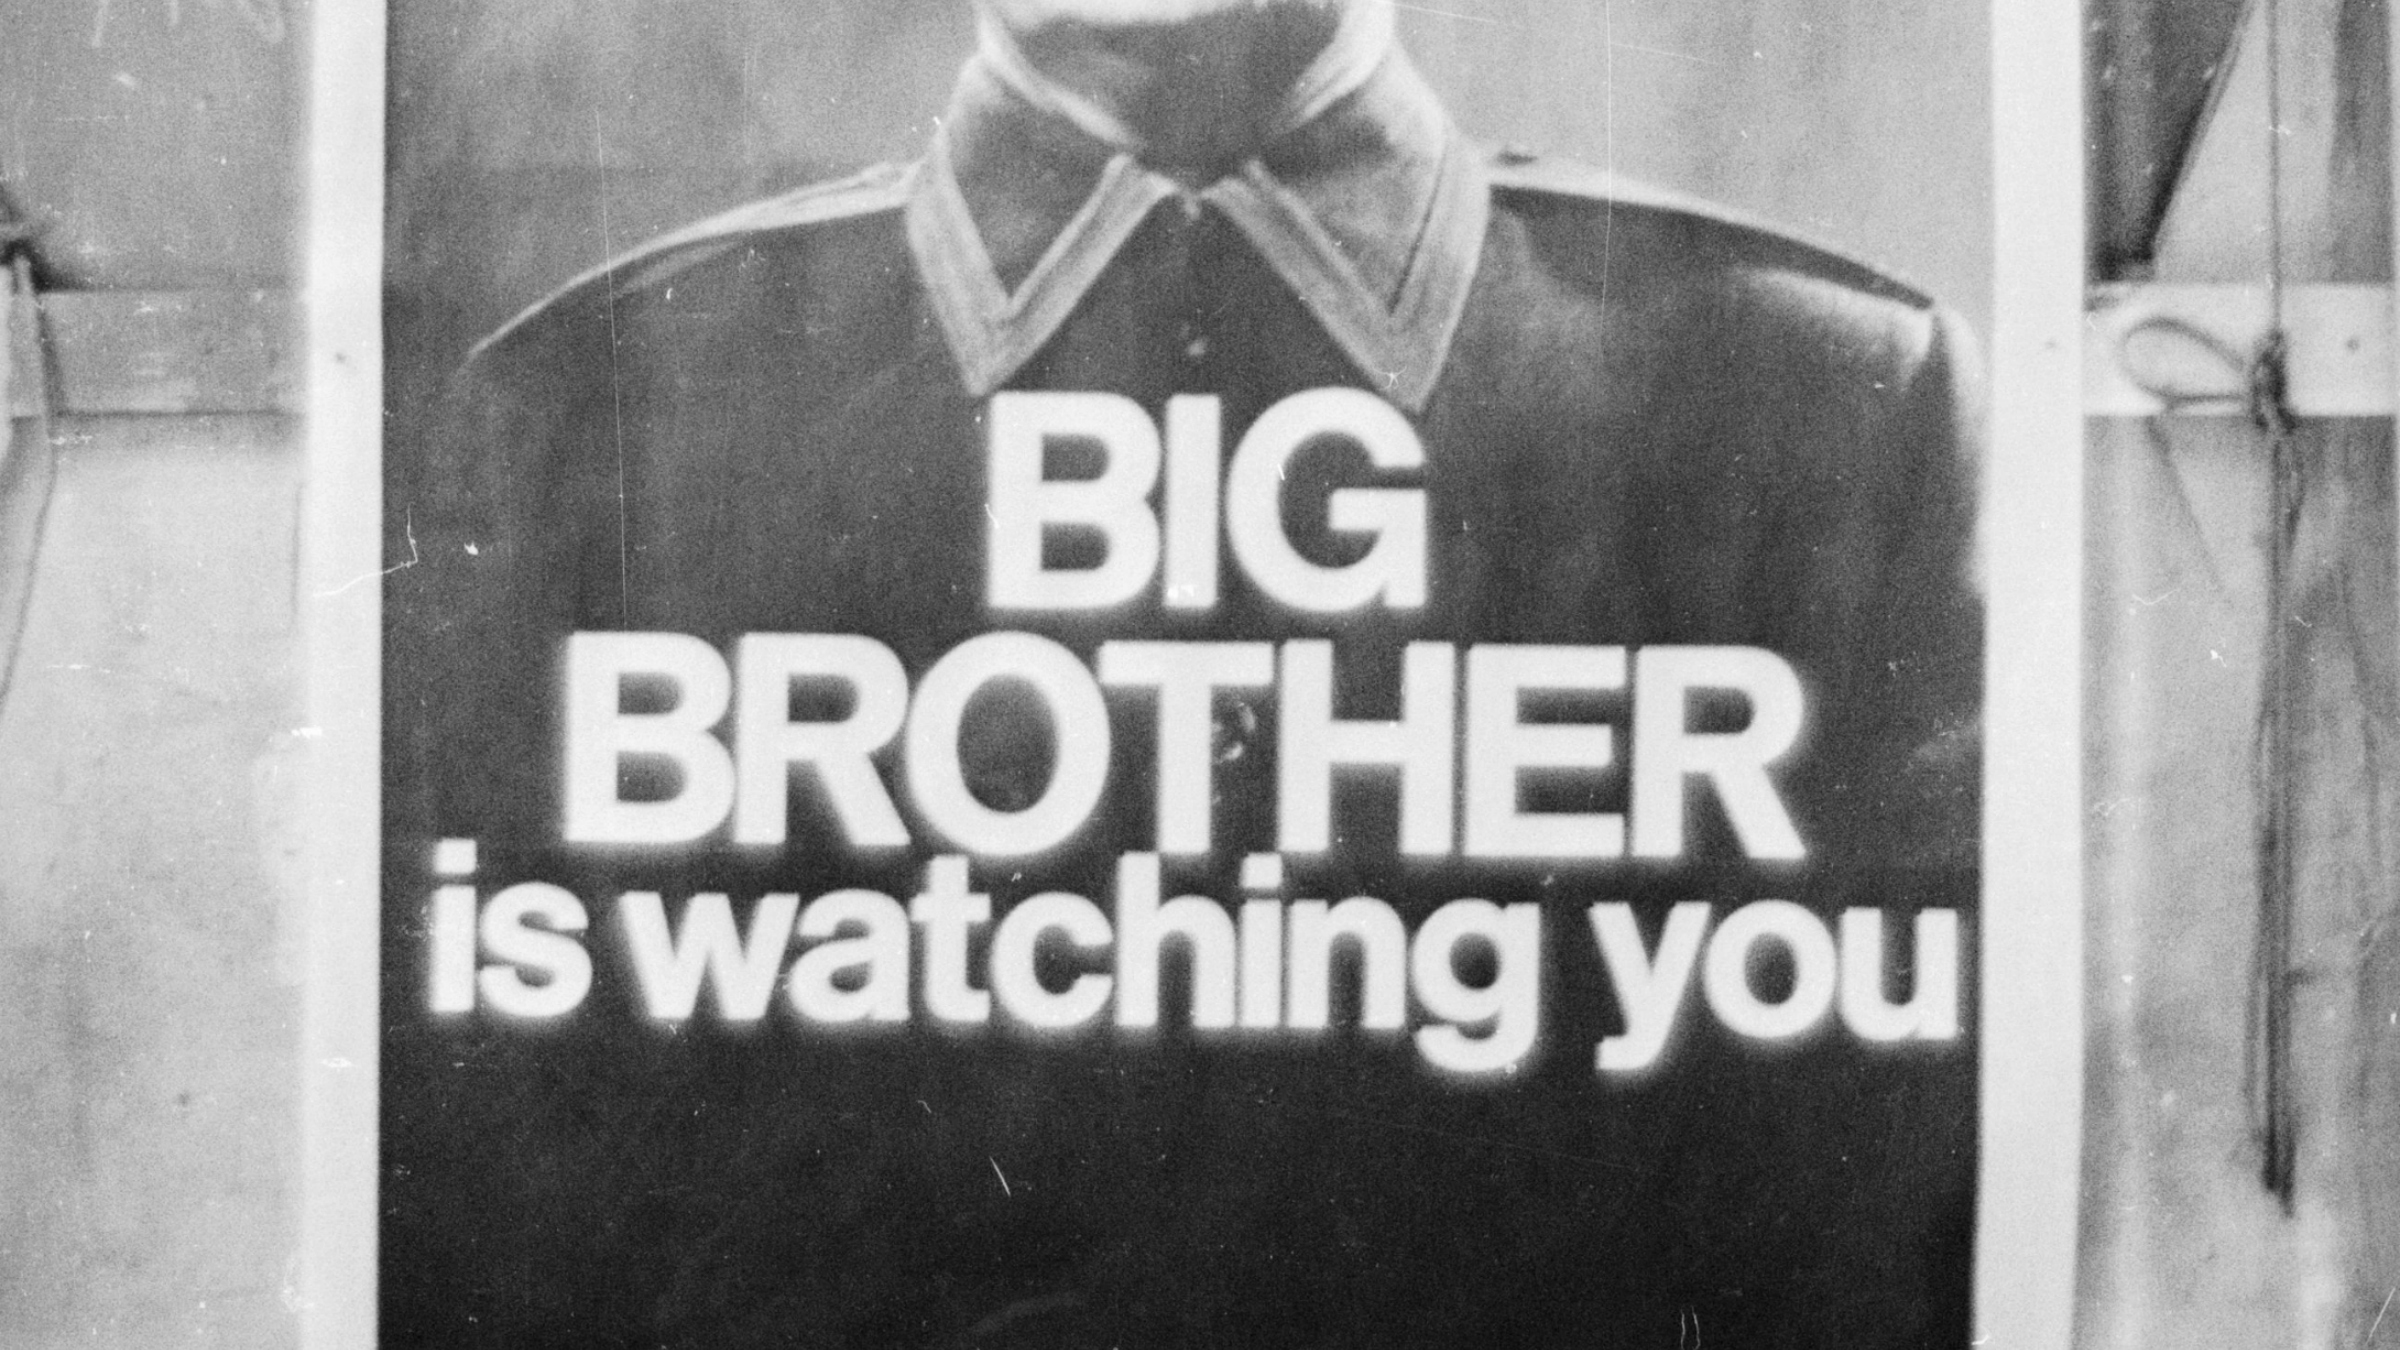 Big brother is watching you--1984 George Orwell